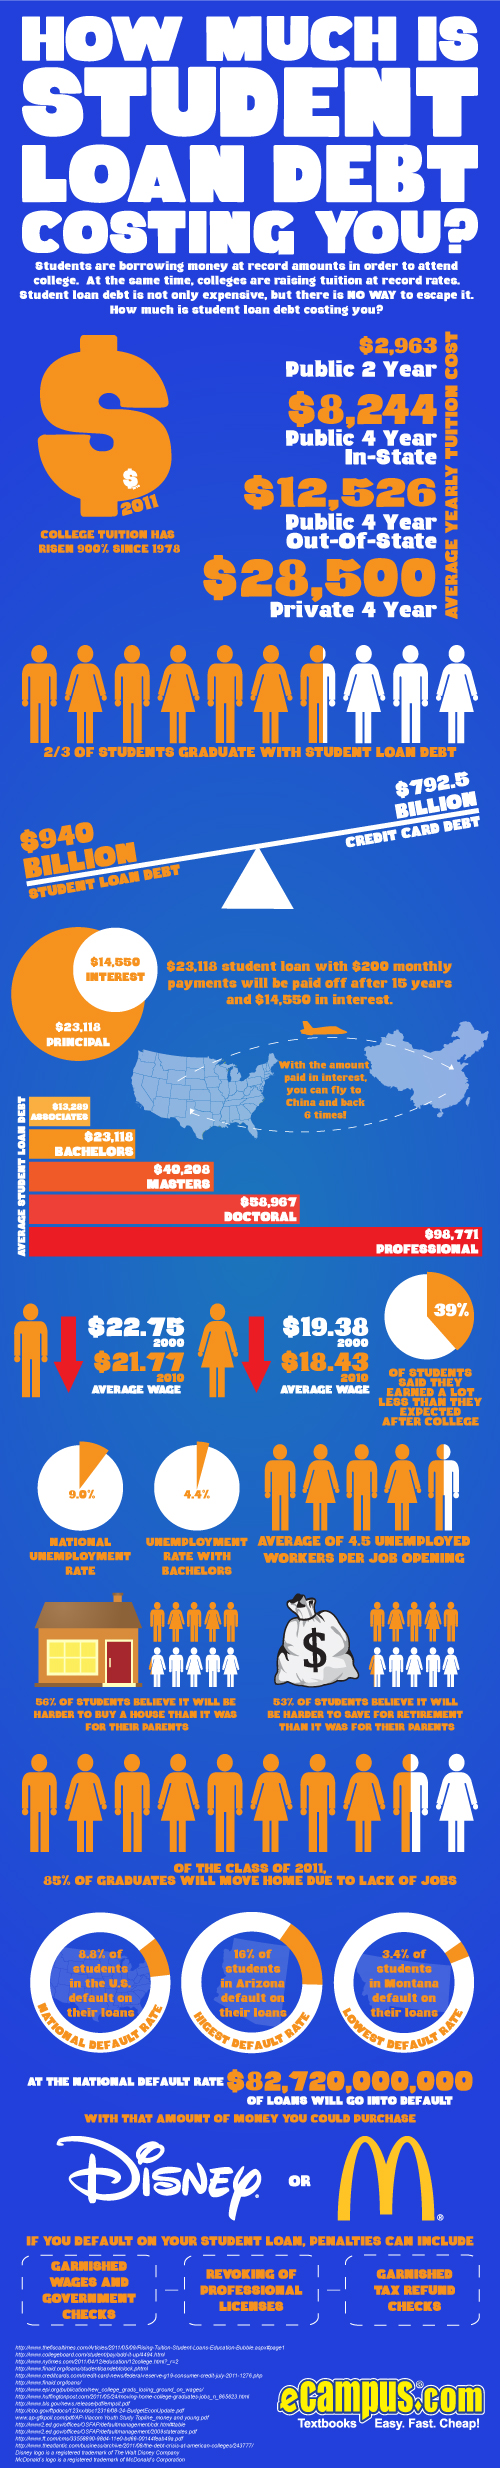 How Much is Student Loan Debt Costing You? (infographic)